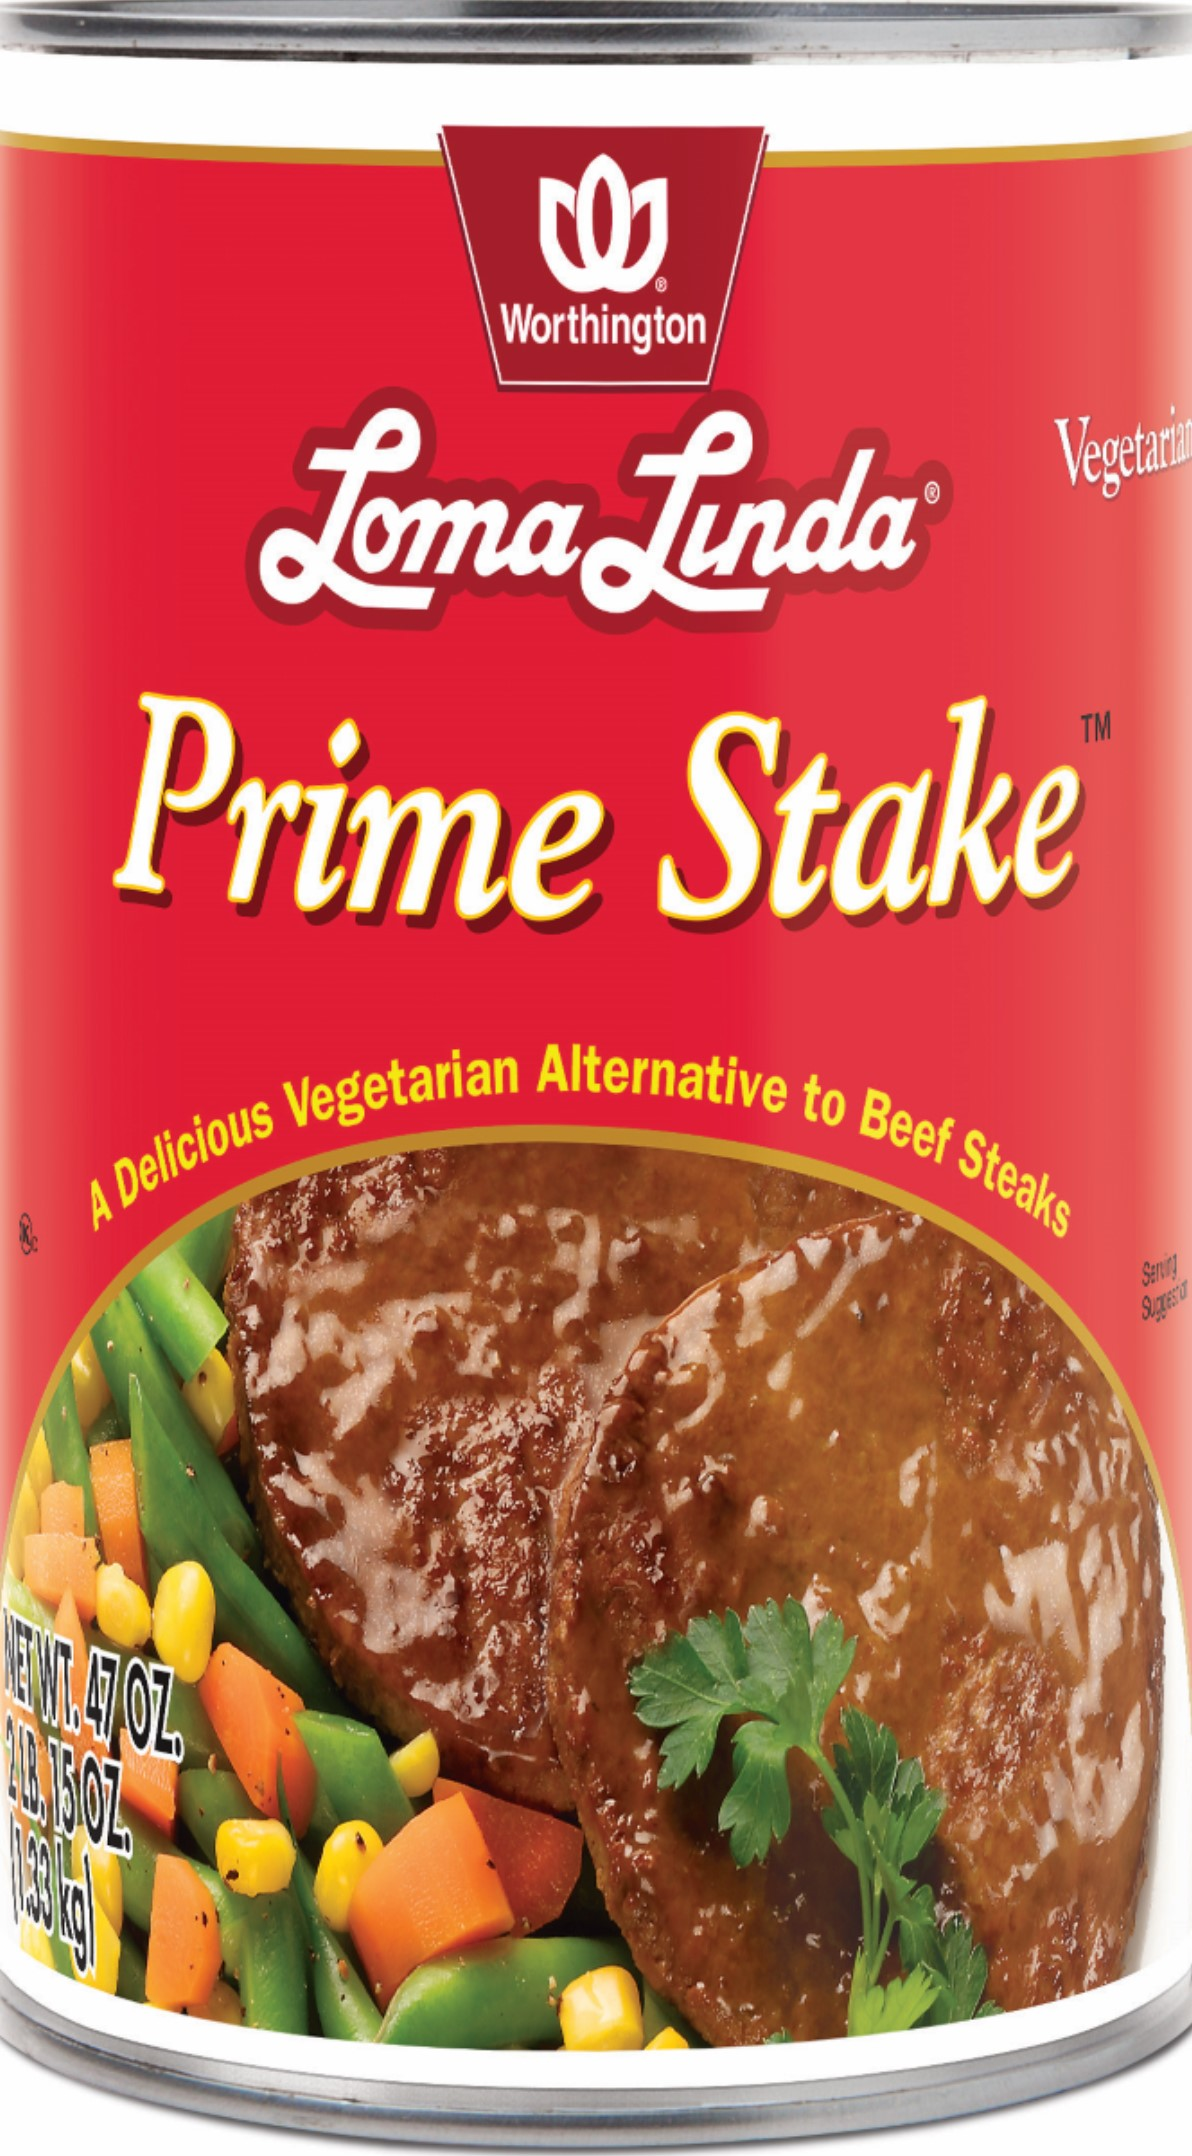 PRIME STAKES FAMILY SIZE,WORTHINGTON,4556100069